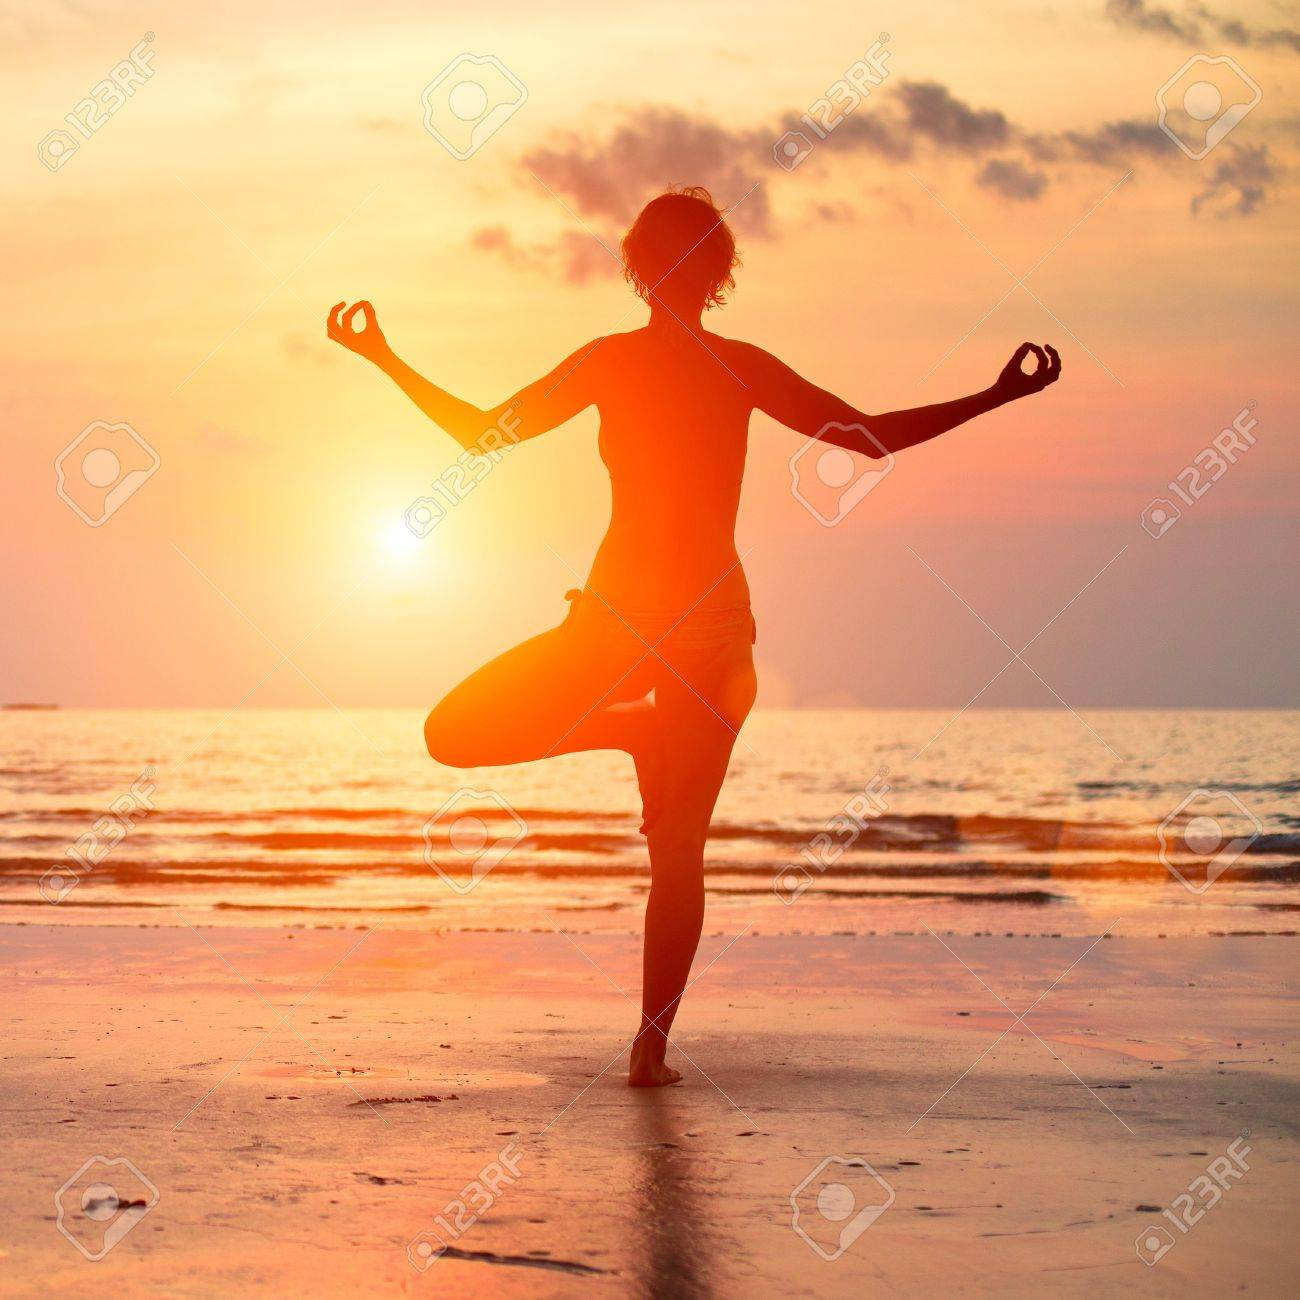 Silhouette of a beautiful yoga woman on the beach at sunset. Stock Photo - 17567279